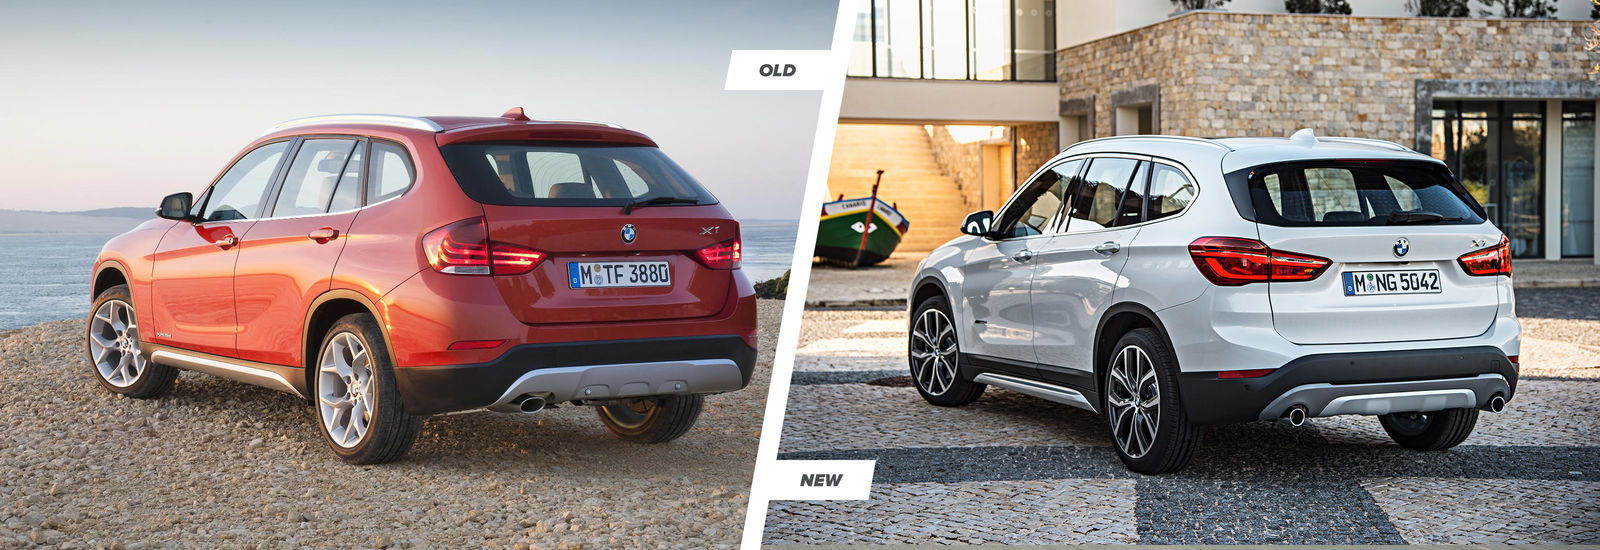 2015 bmw x1 old vs new compared carwow. Black Bedroom Furniture Sets. Home Design Ideas